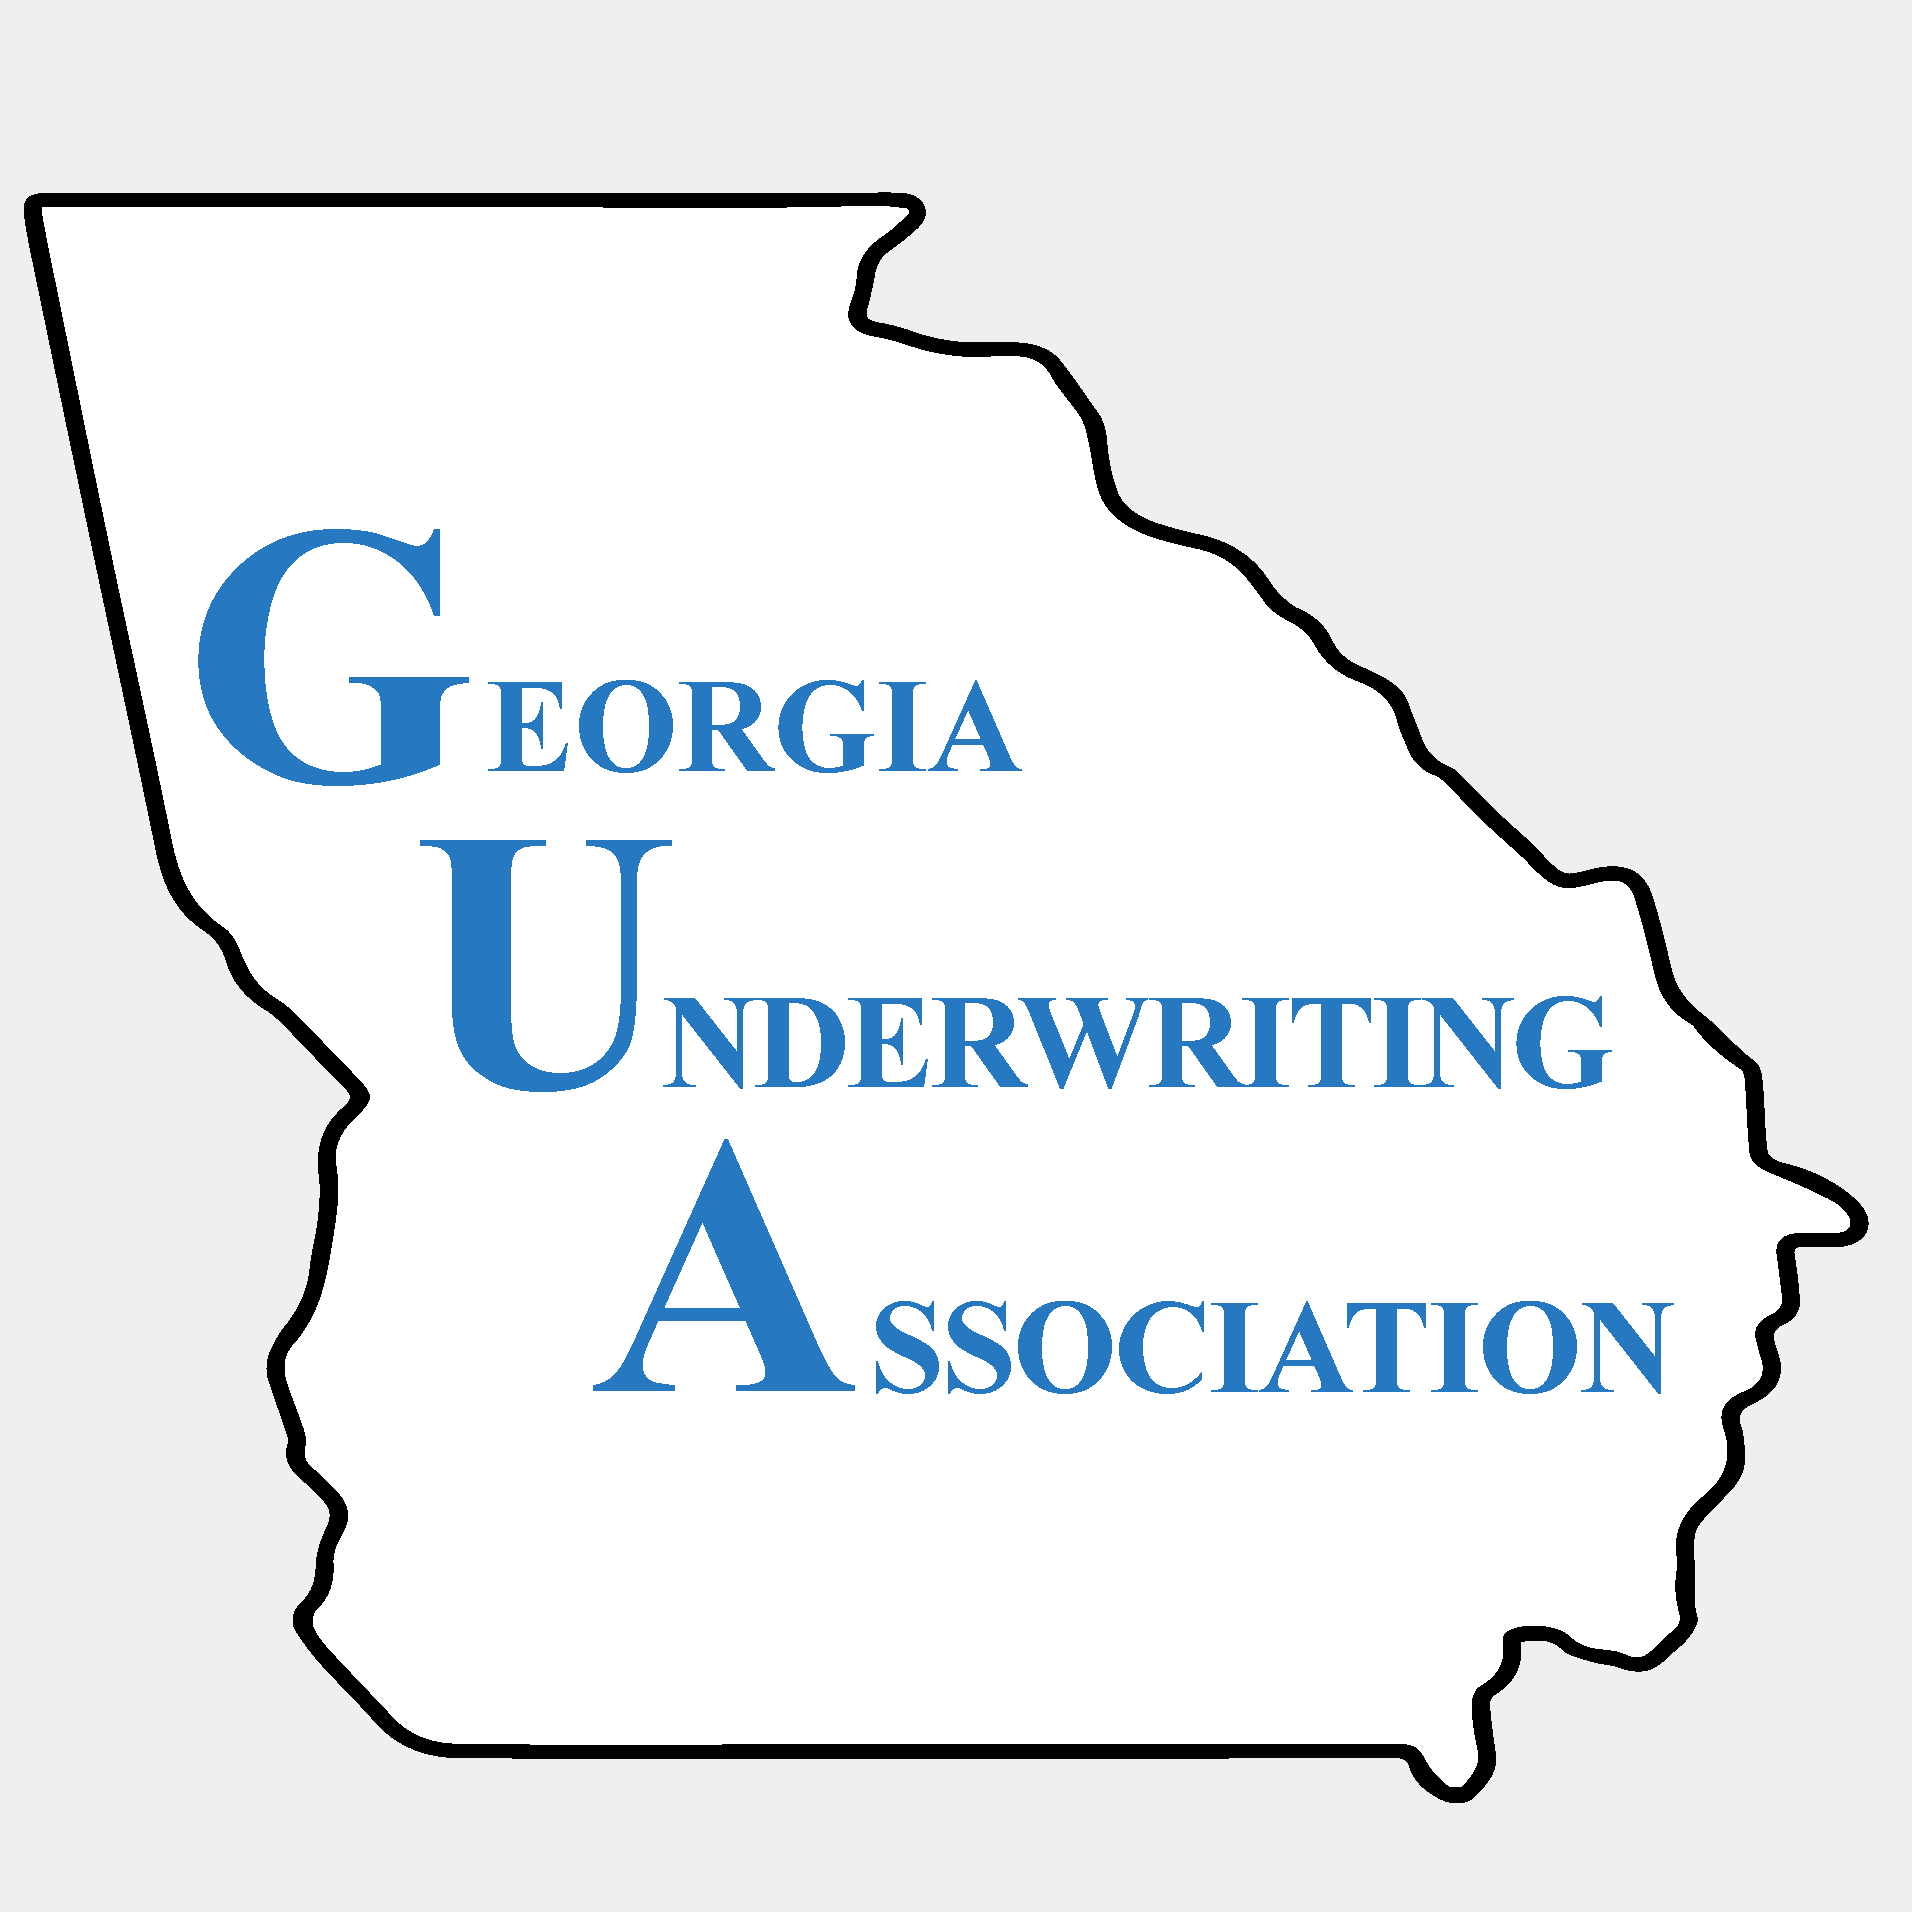 Georgia Underwriting Association